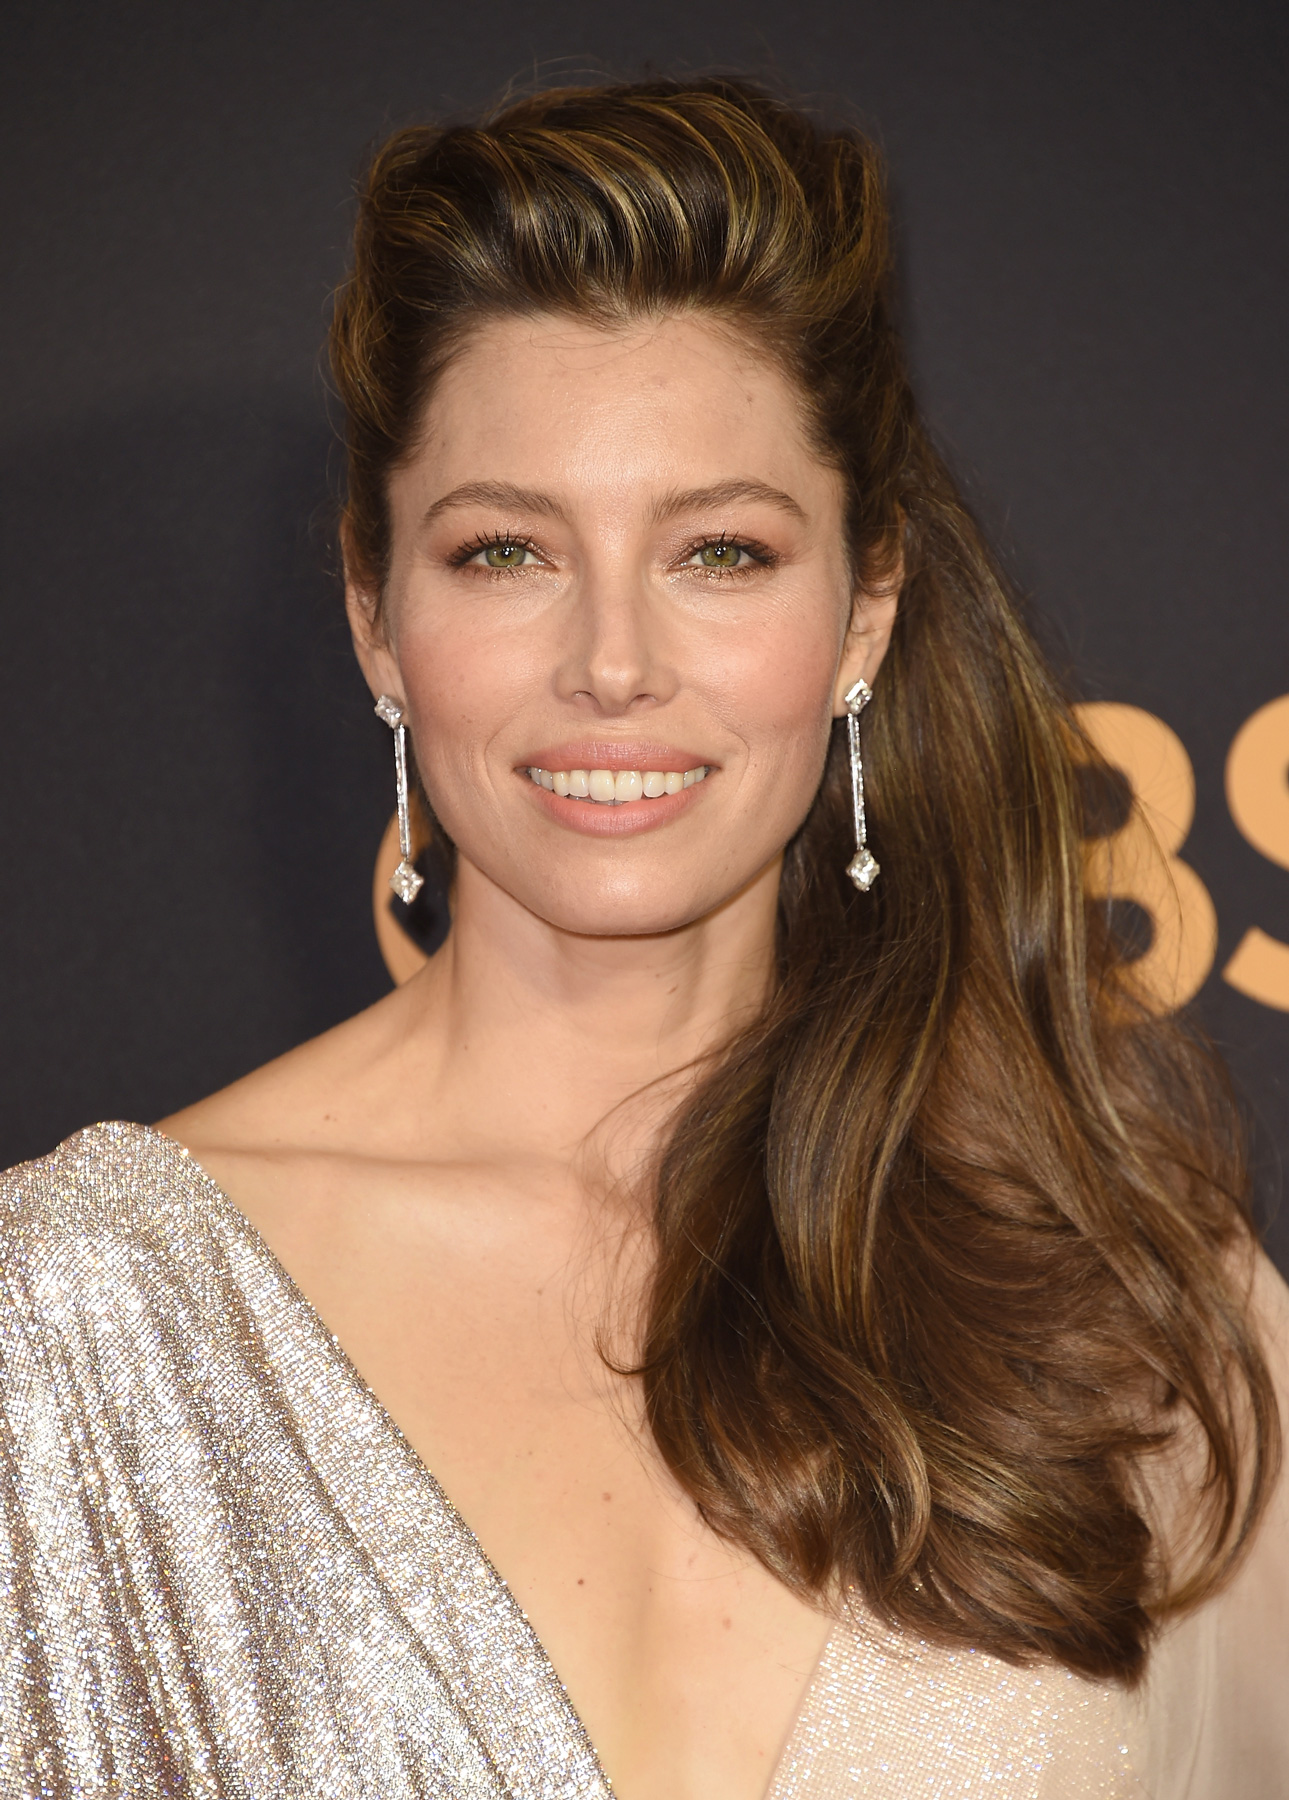 Pictures Jessica Biel nude (95 foto and video), Topless, Fappening, Instagram, cameltoe 2006